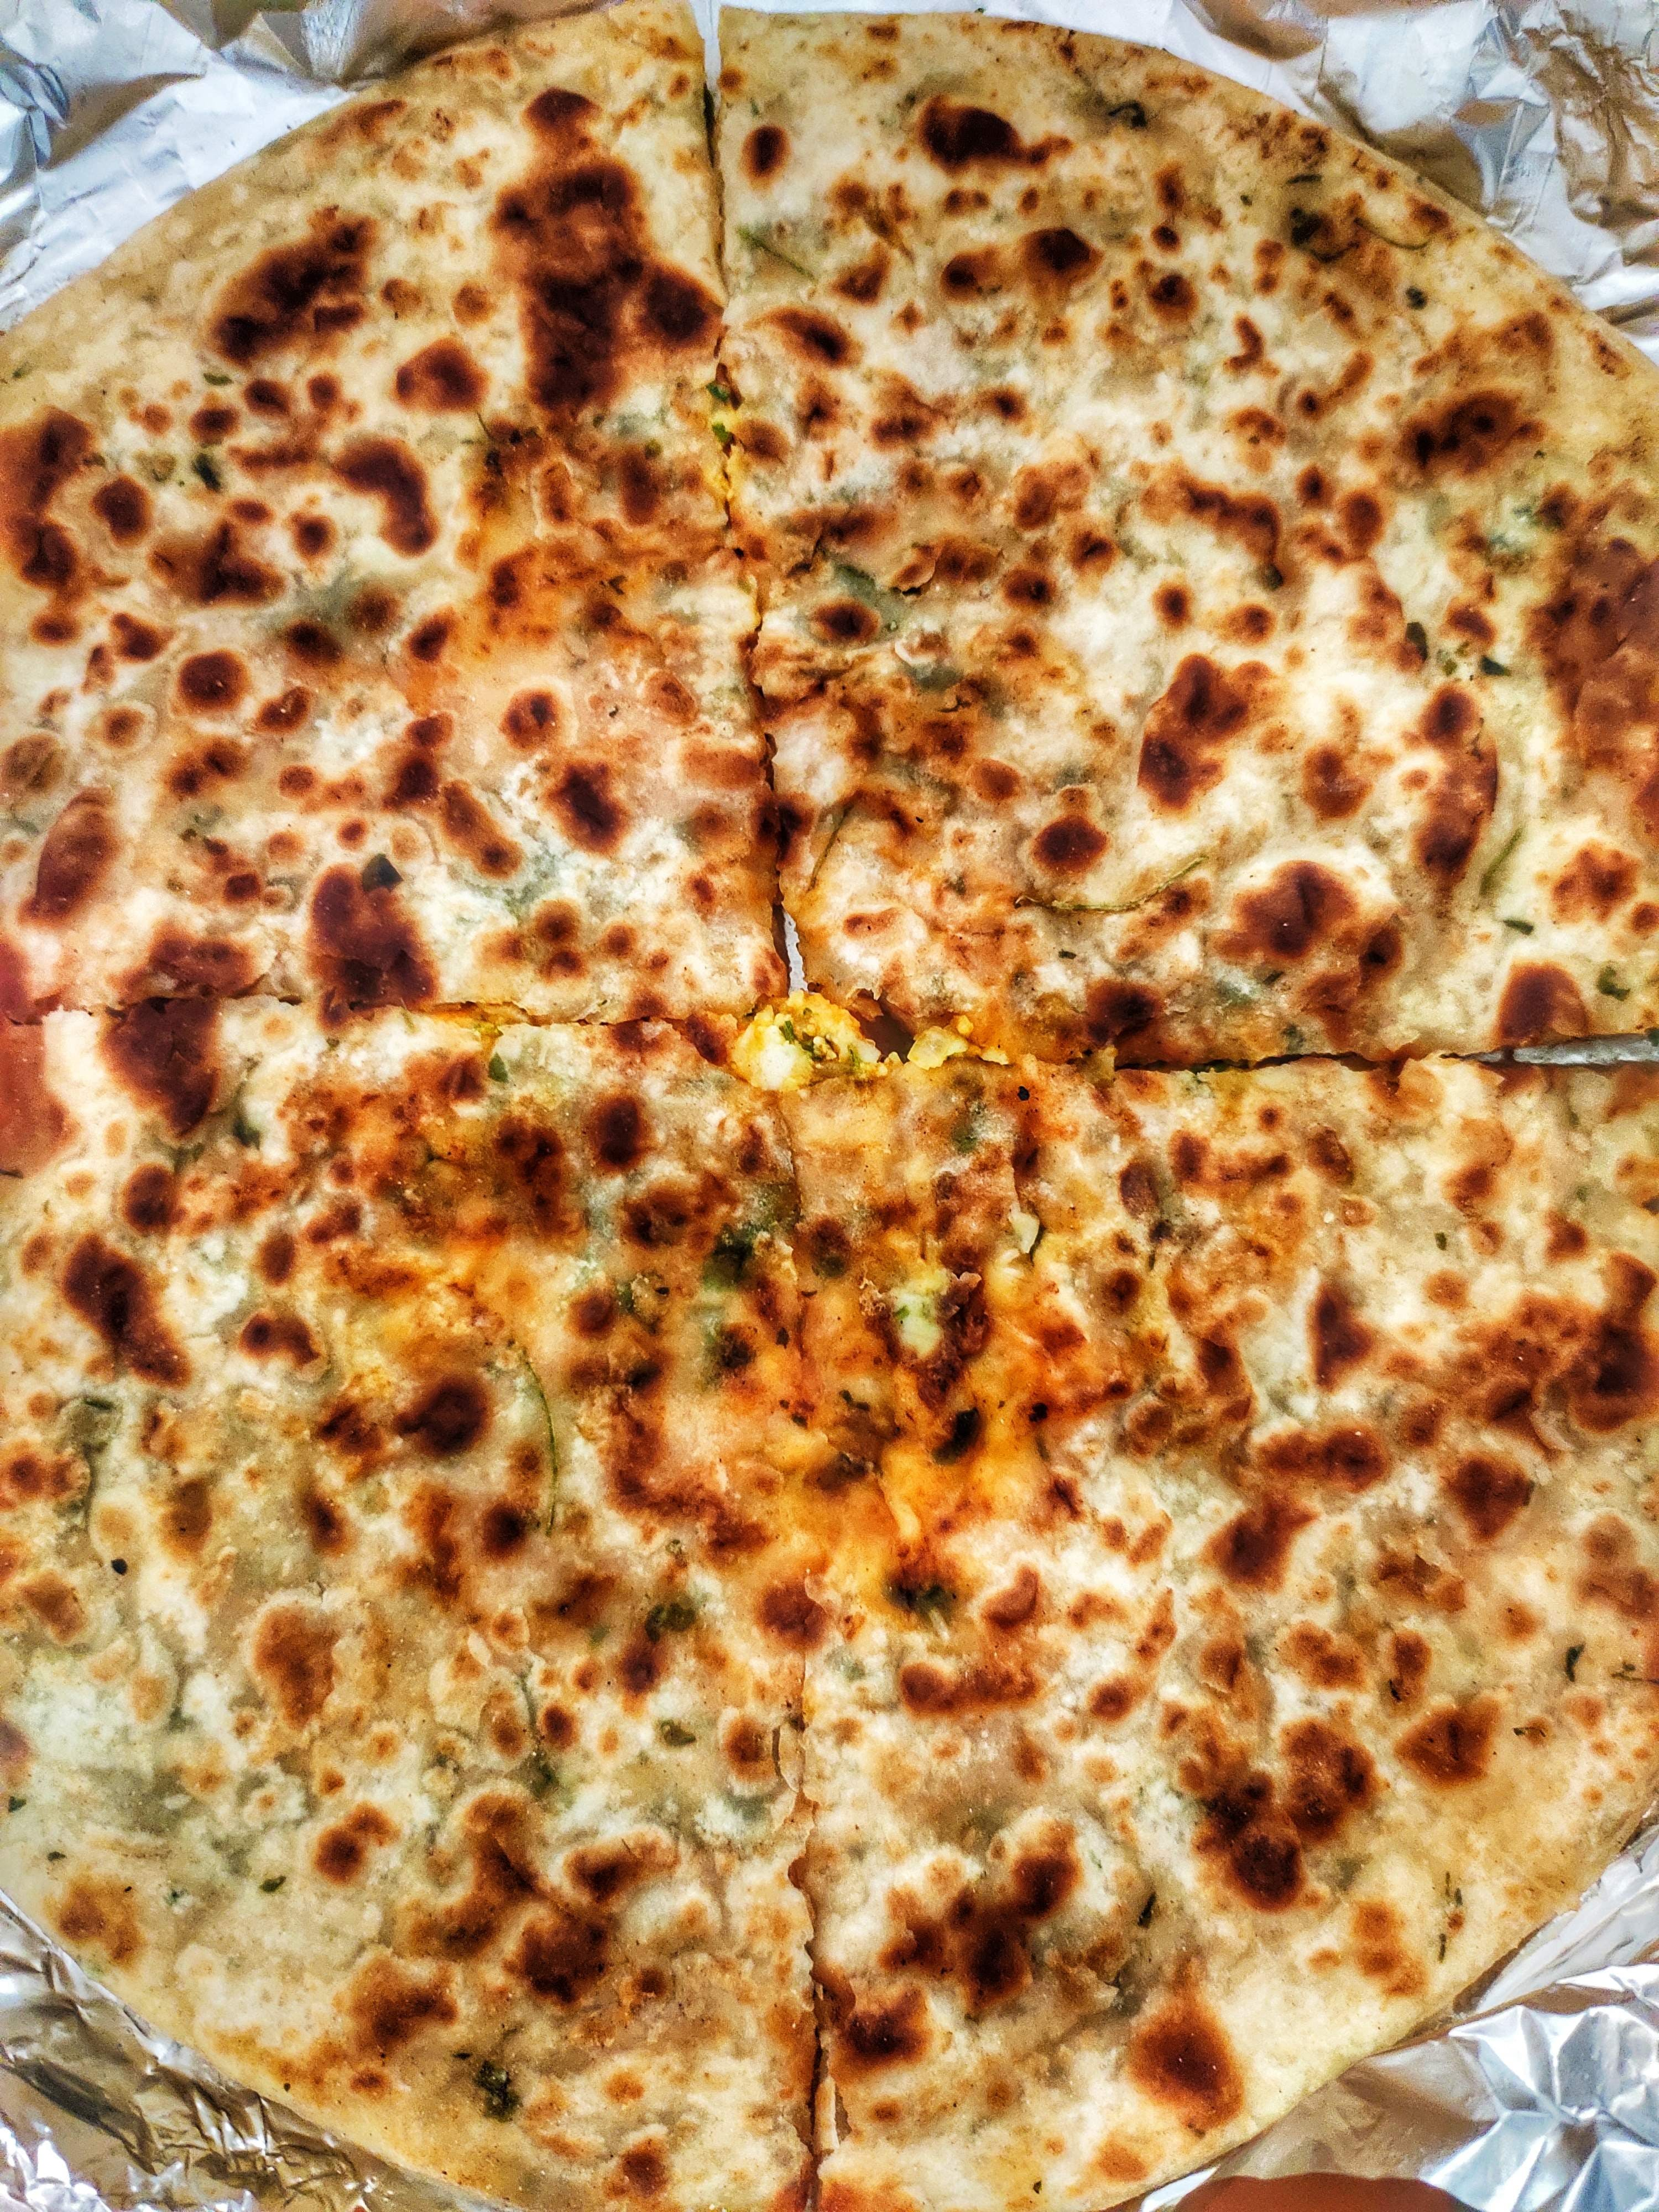 Get The Best Parathas In Town Delivered At Your Doorstep